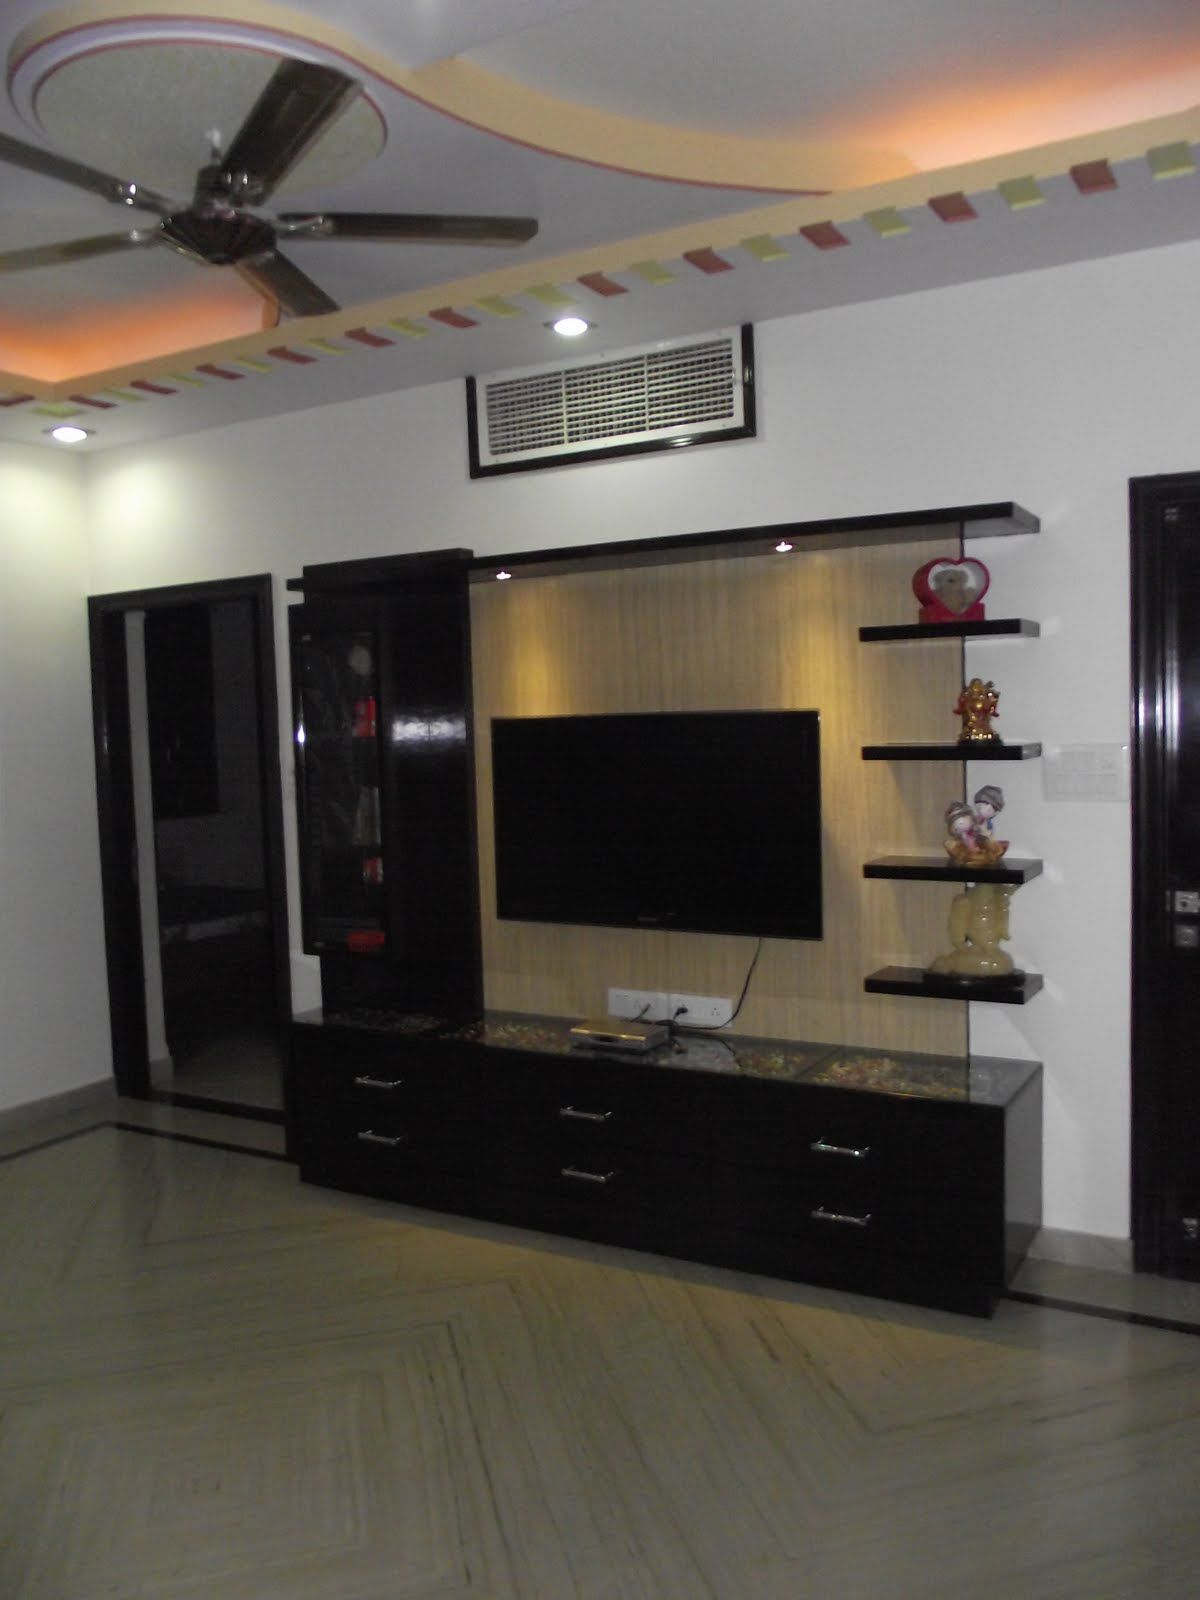 Latest Tv Unit Design: Popular Interior Design For TV Showcase